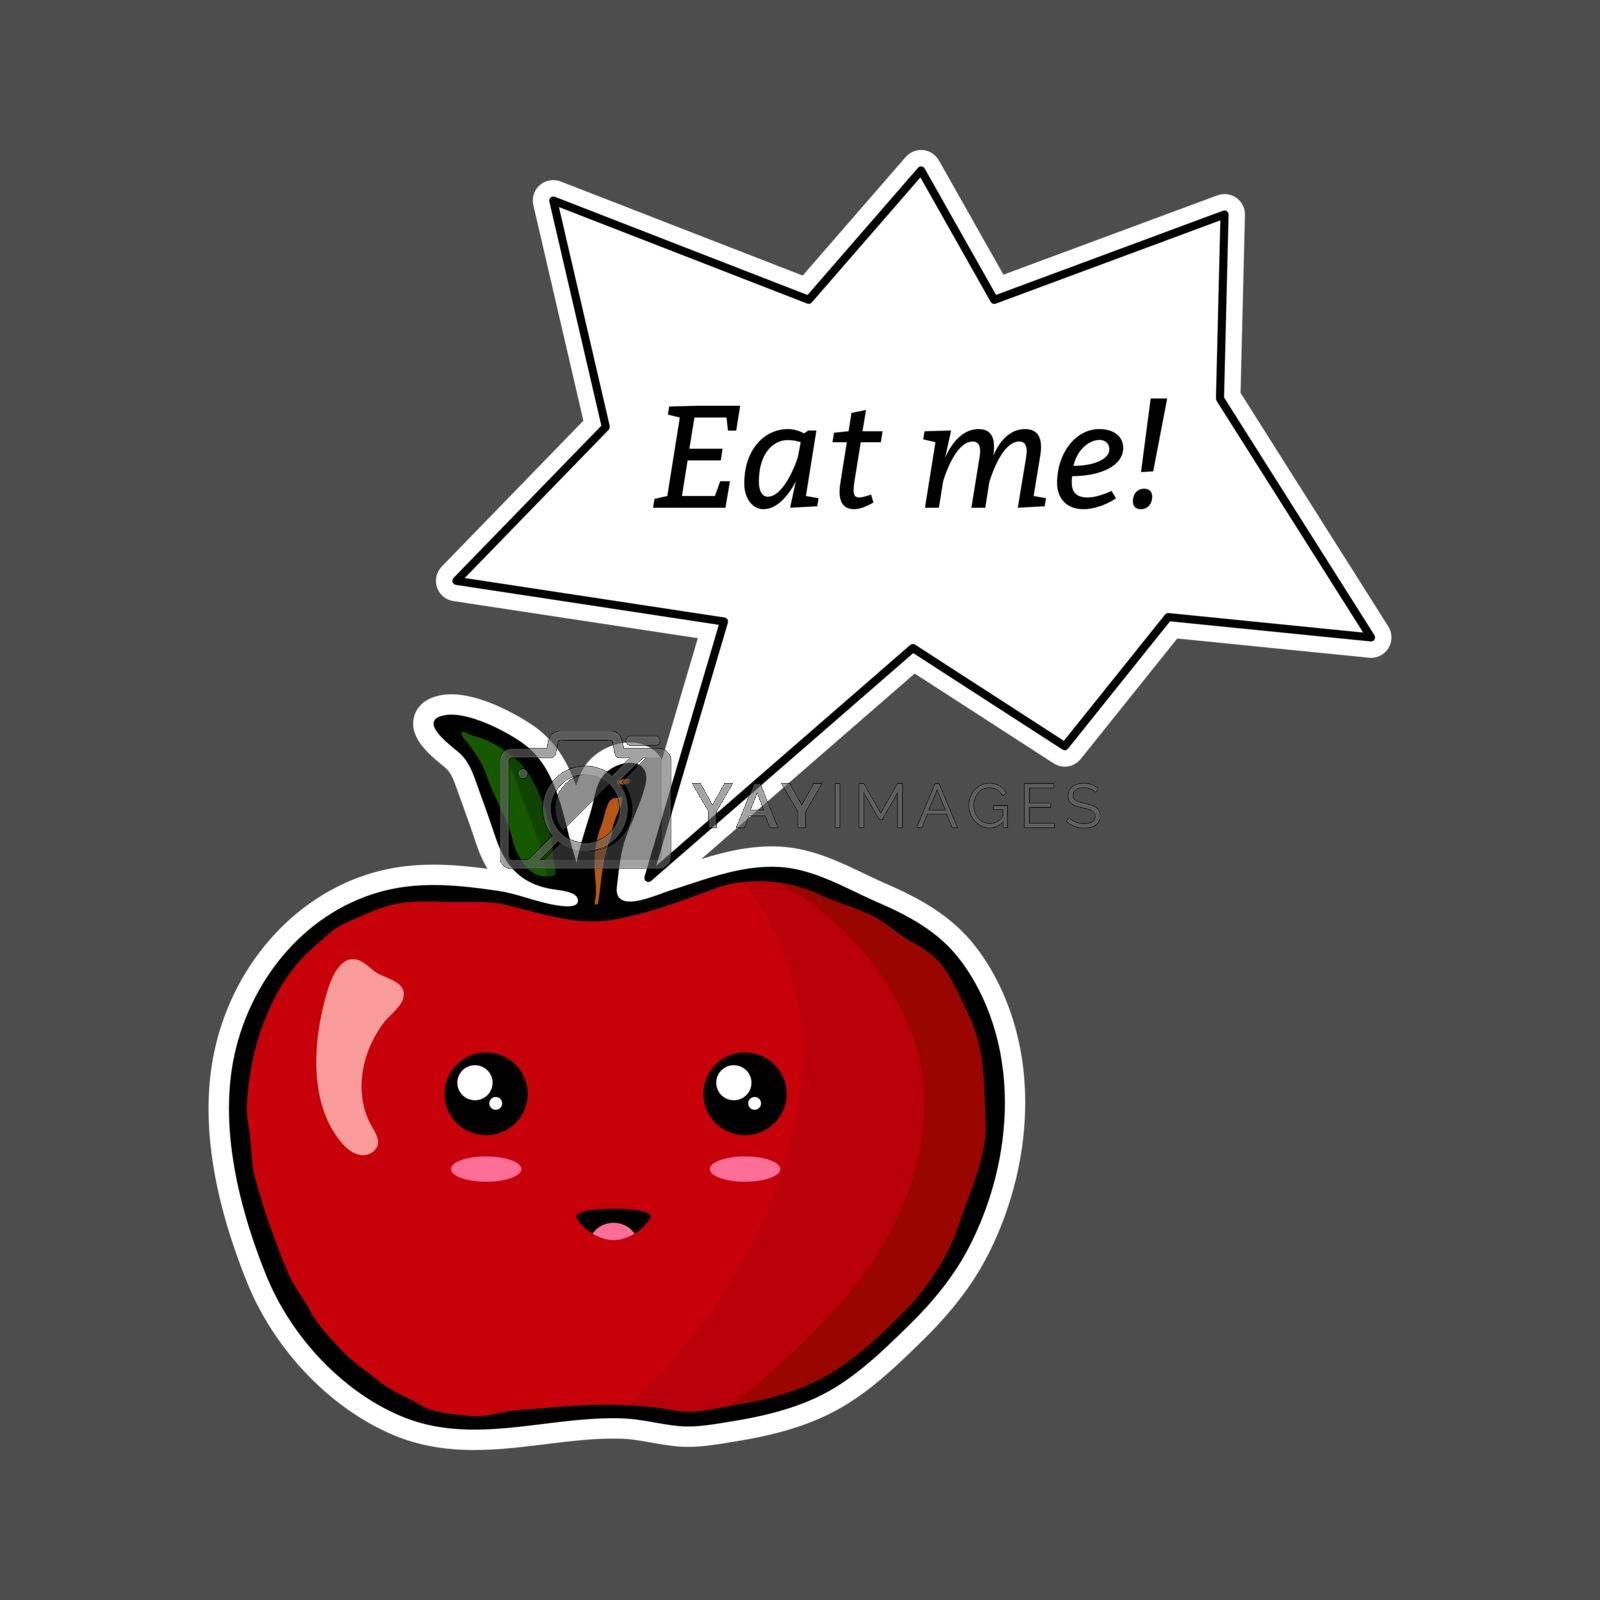 Kawaii sticker colorful cartoon apple with speech bubble 'Eat me!'. Vector illustration isolated on dark background.